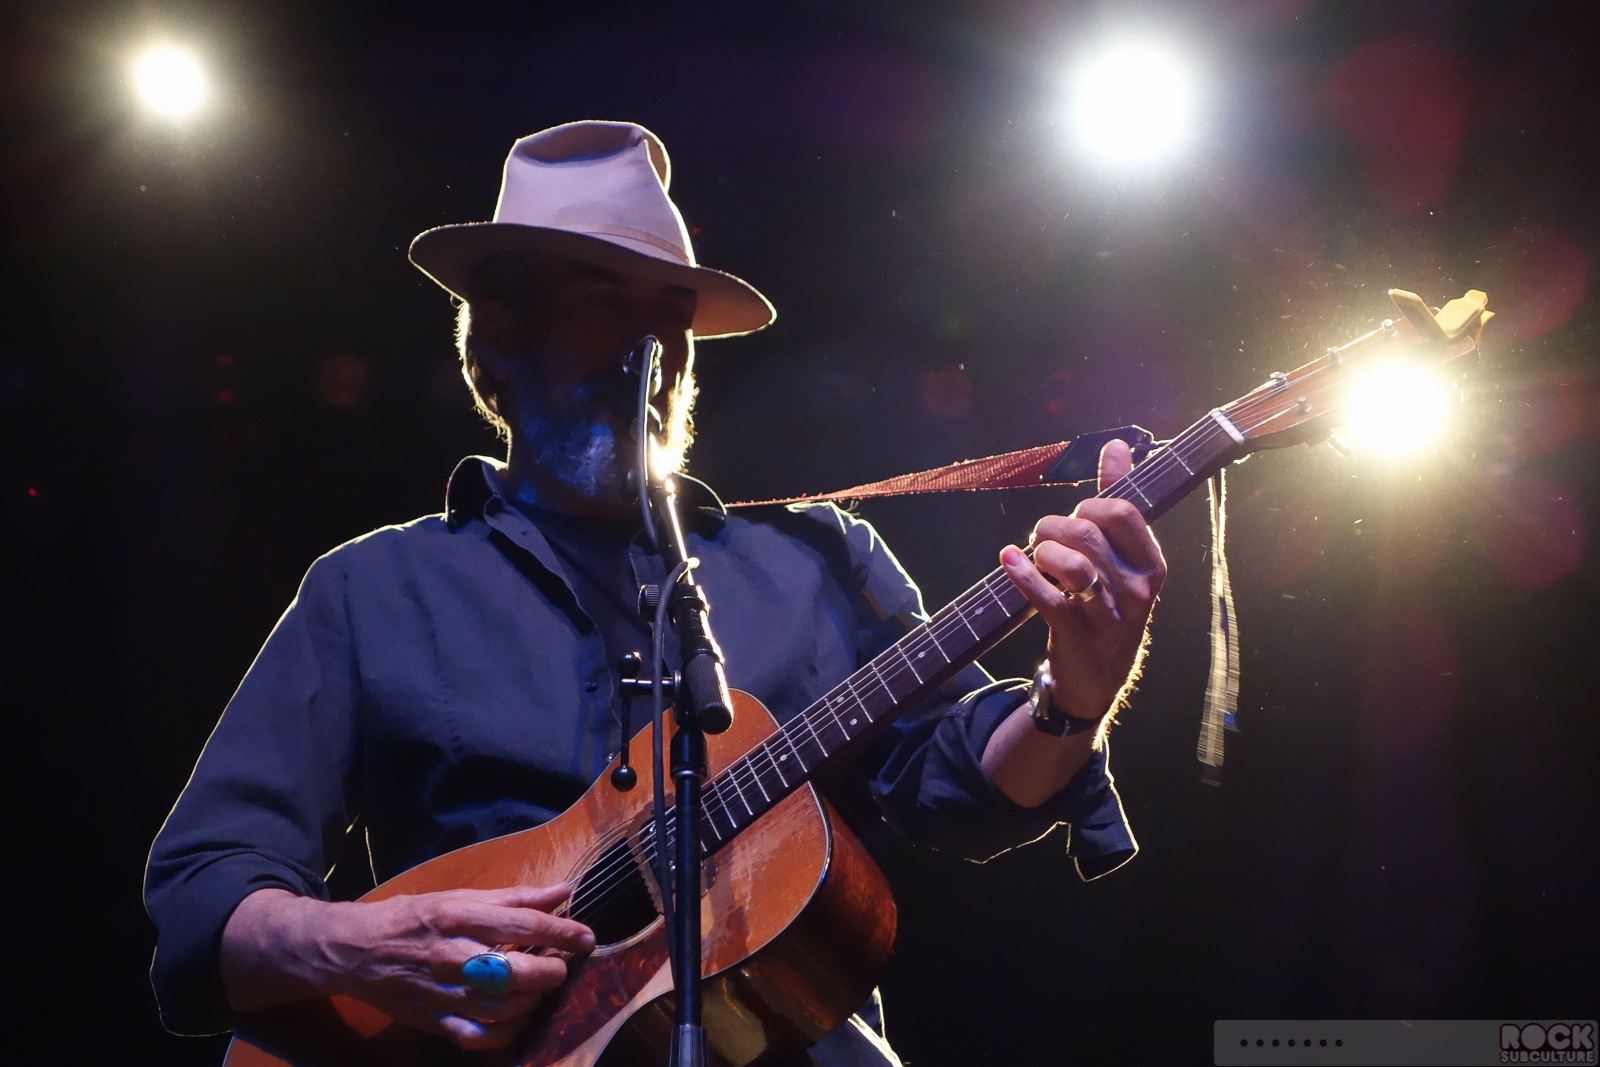 Sixto Diaz Rodriguez Searching For Sugar Man At The Warfield